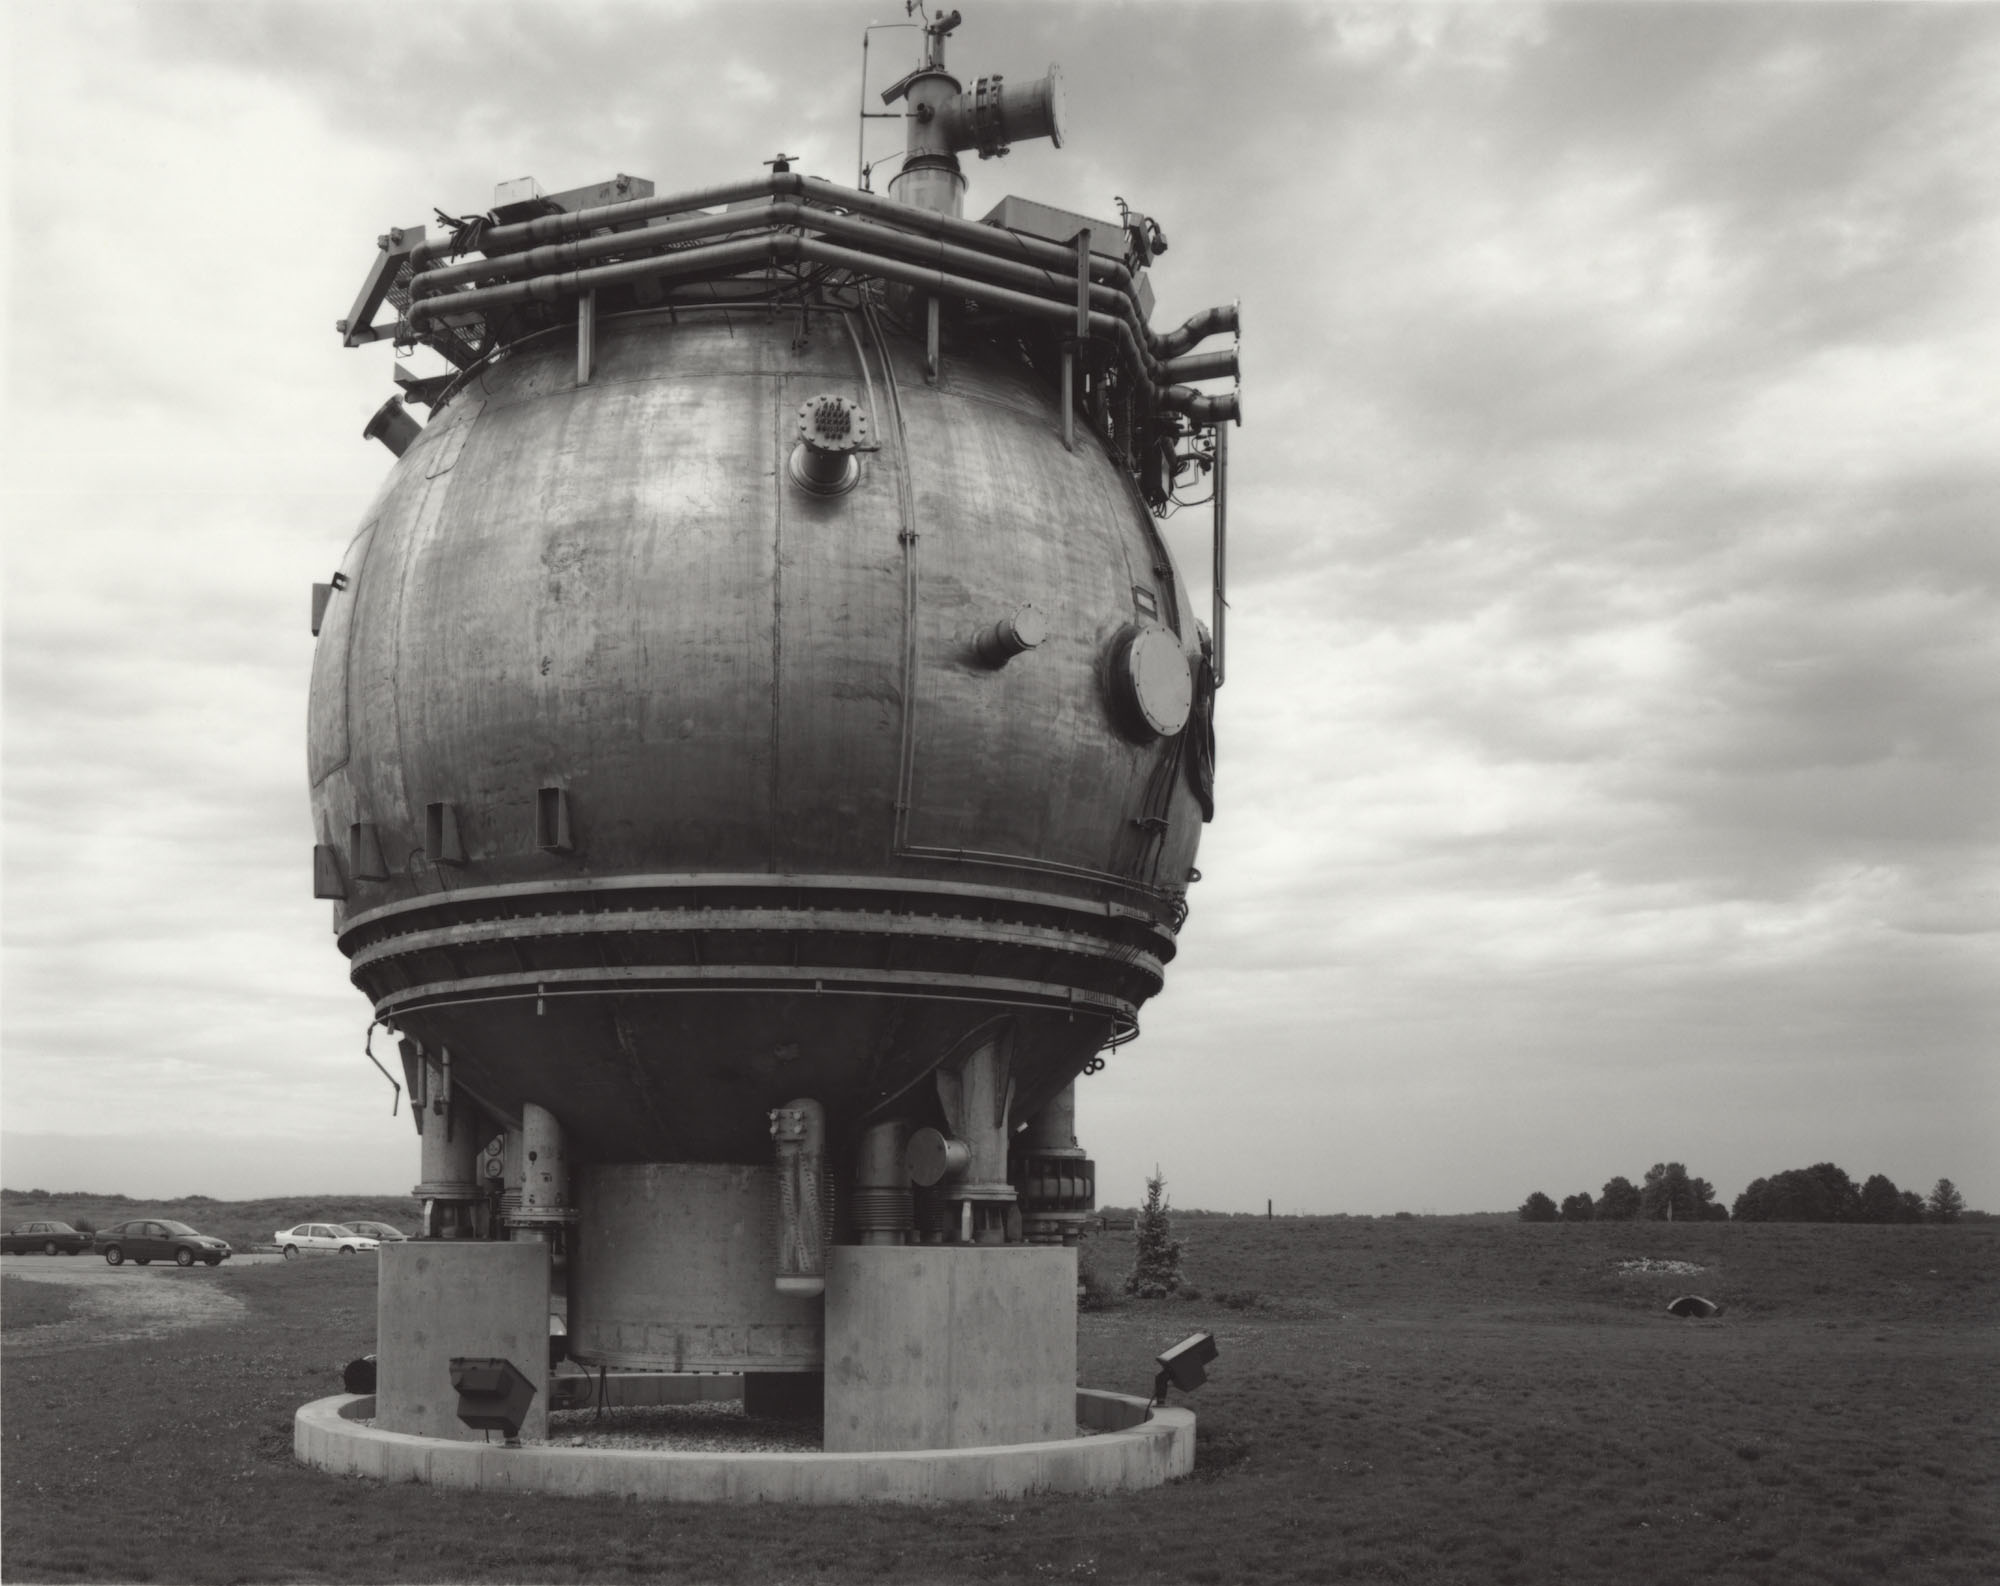 The 15-foot bubble chamber at Fermi National Accelerator Laboratory in Batavia, Illinois (2006). No longer in operation, the chamber once allowed Fermilab physicists to study elusive high-energy particles such as kaons, lambdas, and electrons. When such particles were introduced into the chamber—which contained superheated hydrogen—they left bubble tracks that could be photographed and analyzed, according to Fermilab Today. Photo by Stanley Greenberg